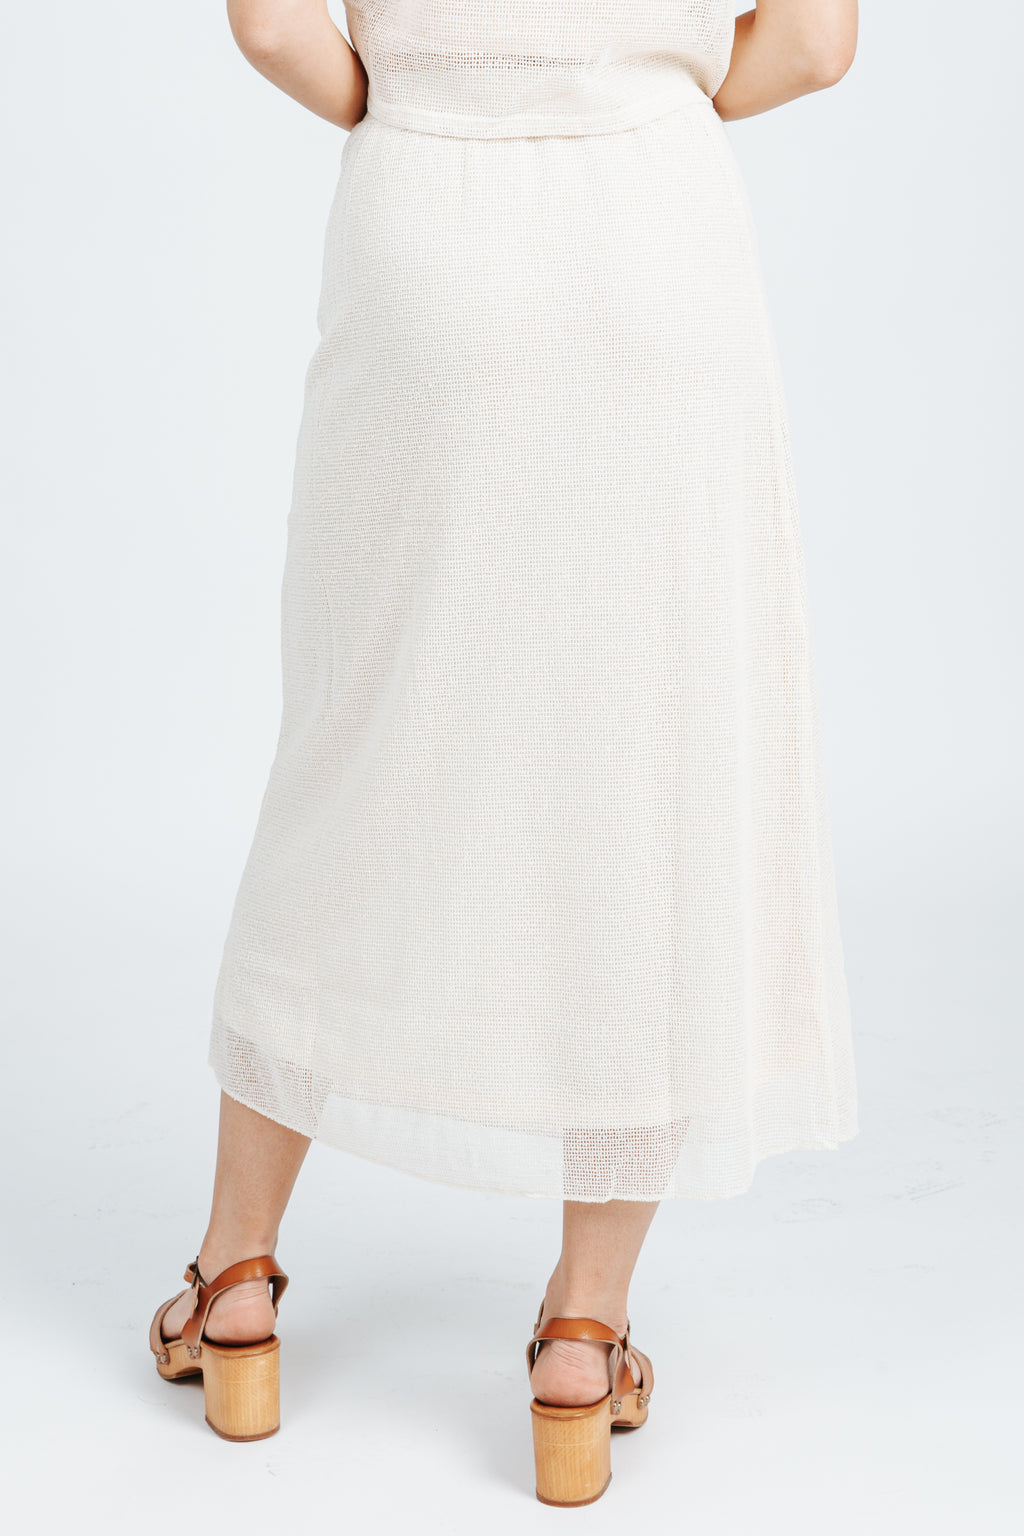 The Banks Knit Skirt in Natural